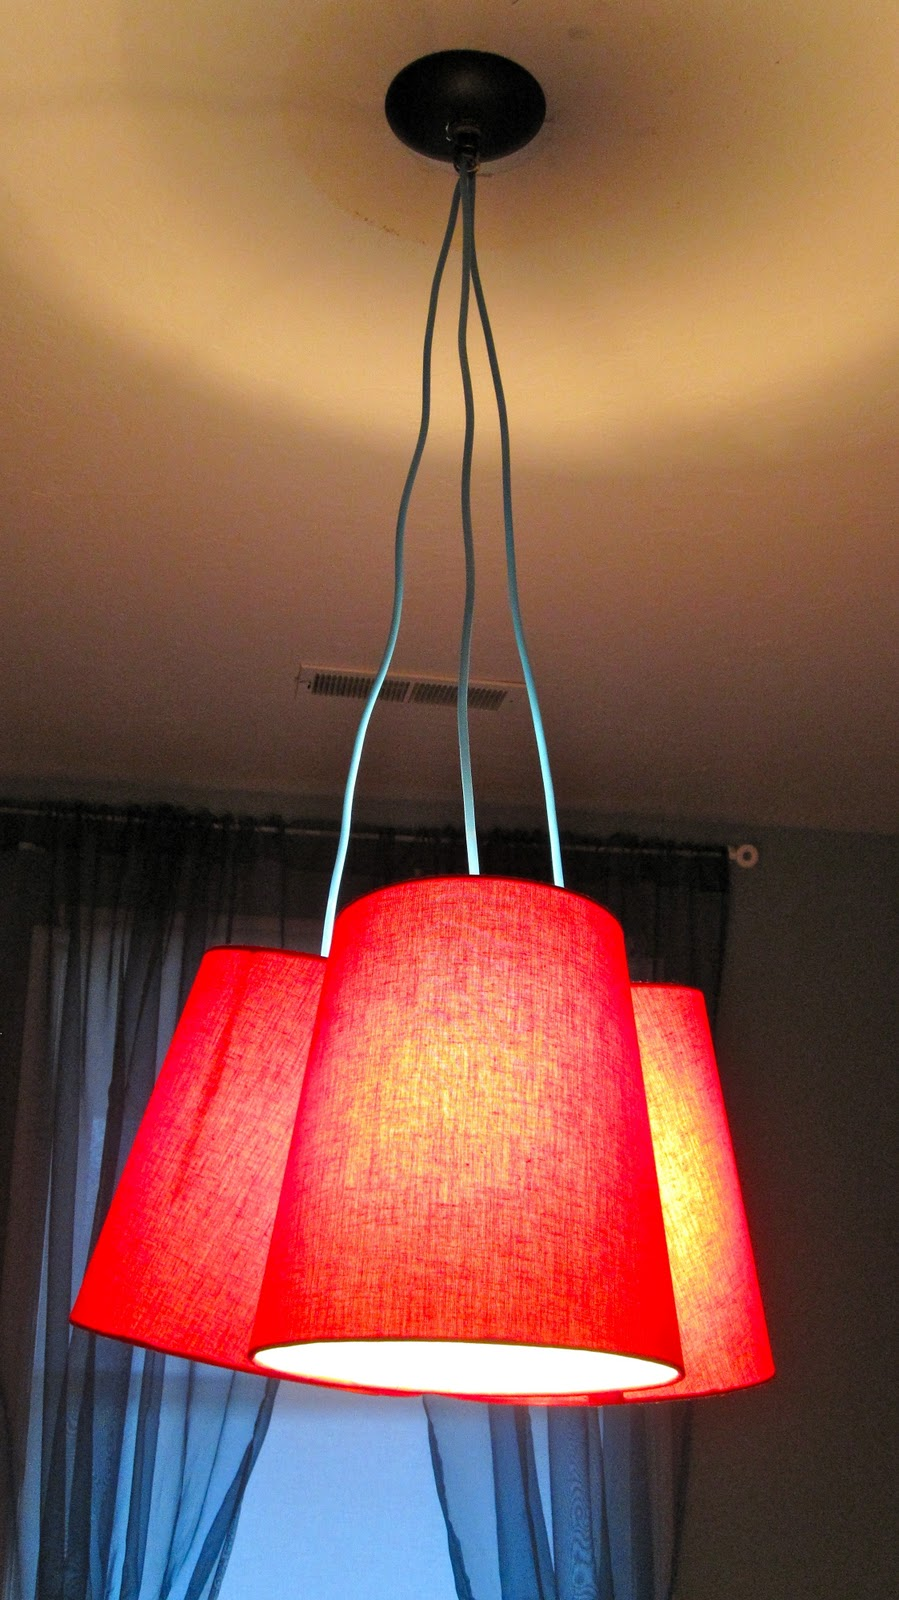 Bird And Berry Pottery Barn Kids Light Knock Off Lamp With Three Lights Wiring I Only Did But More Would Be Fun If You Are Willing To Deal The Difficulties That Cause